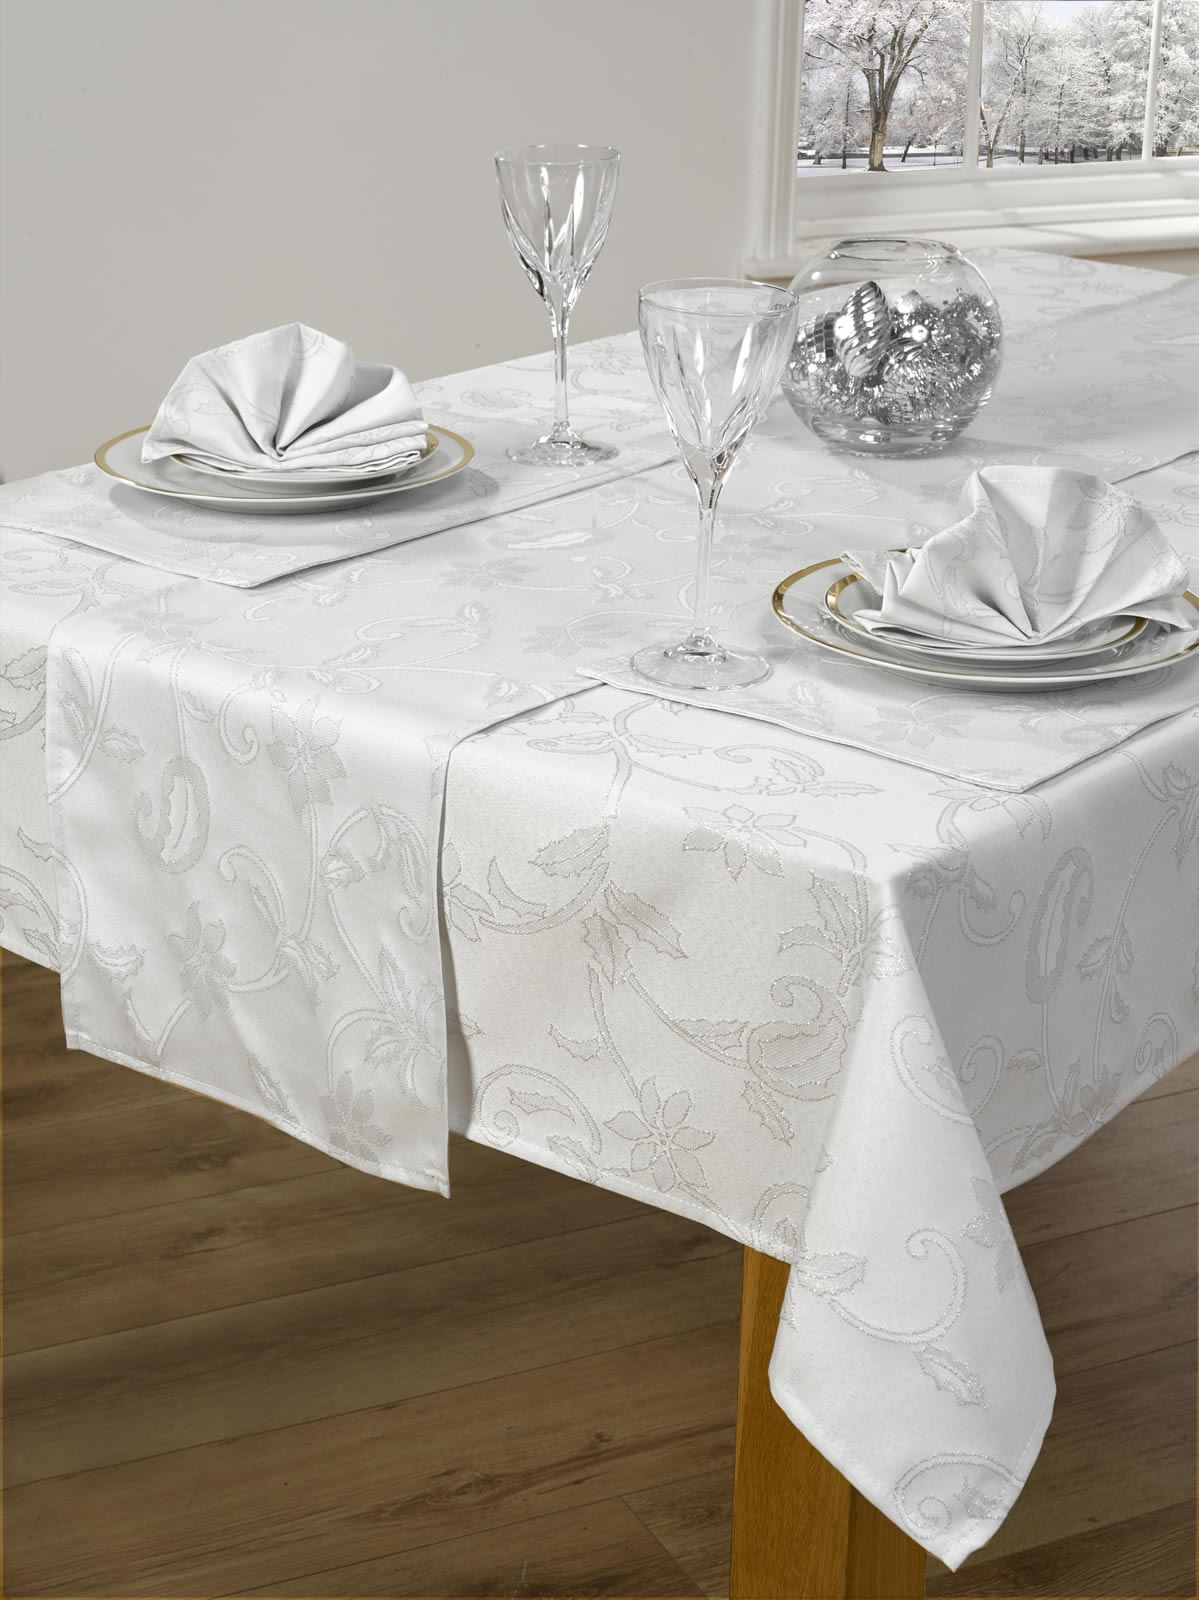 Hand-block printed in Sanganer, India, this rectangle tablecloth fits most standard dining room tables. All of the Jubilee Traders linens are produced by artisans using a traditional method of hand-block printing that has been an important art in the Rajasthan region of India for generations.